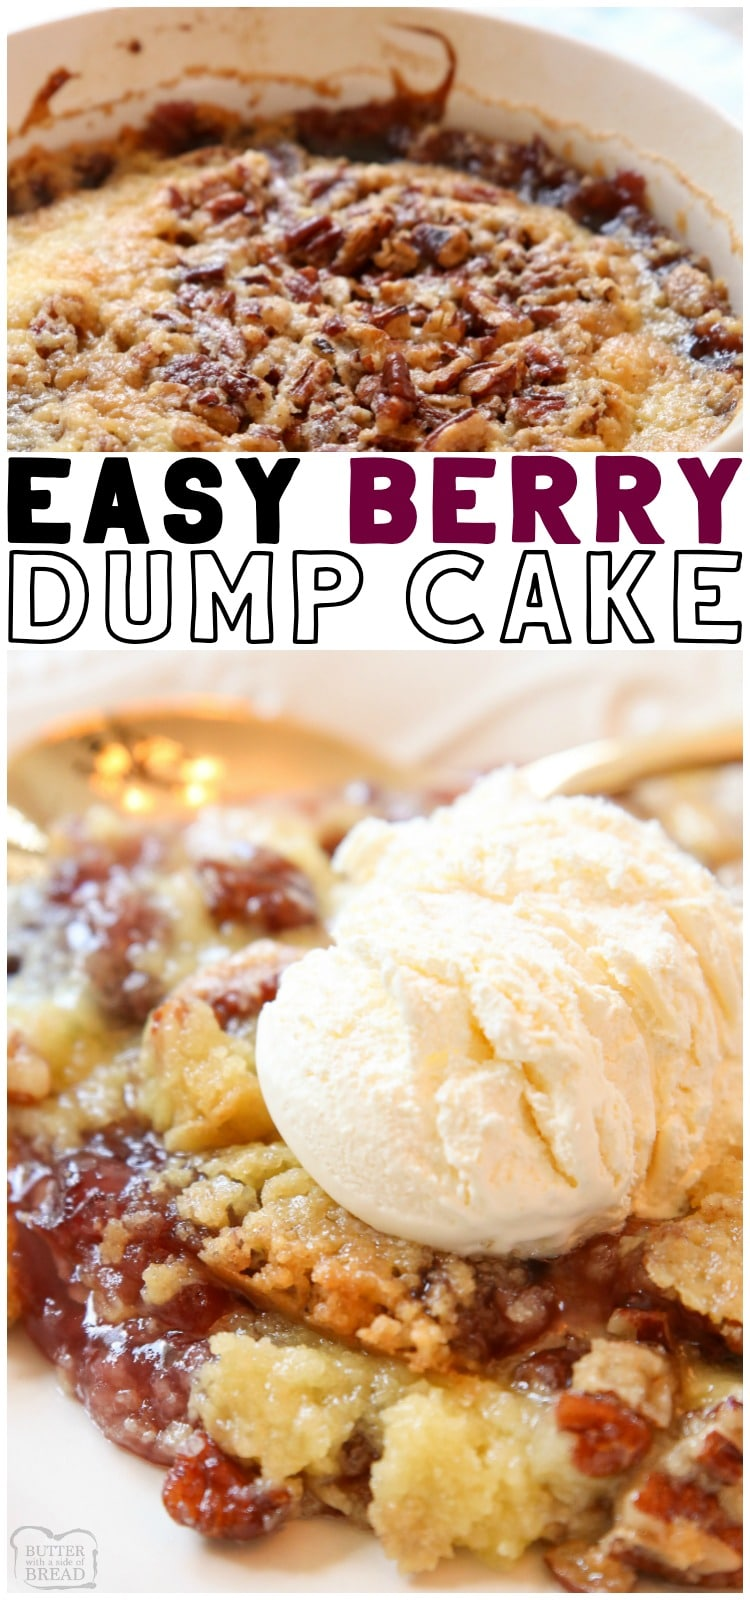 Berry Dump Cake recipe made with just 4 ingredients and ready to serve in 30 minutes! Easy dump cake made with raspberries, blueberries and strawberries. This Berry Cake is perfect served with vanilla ice cream.